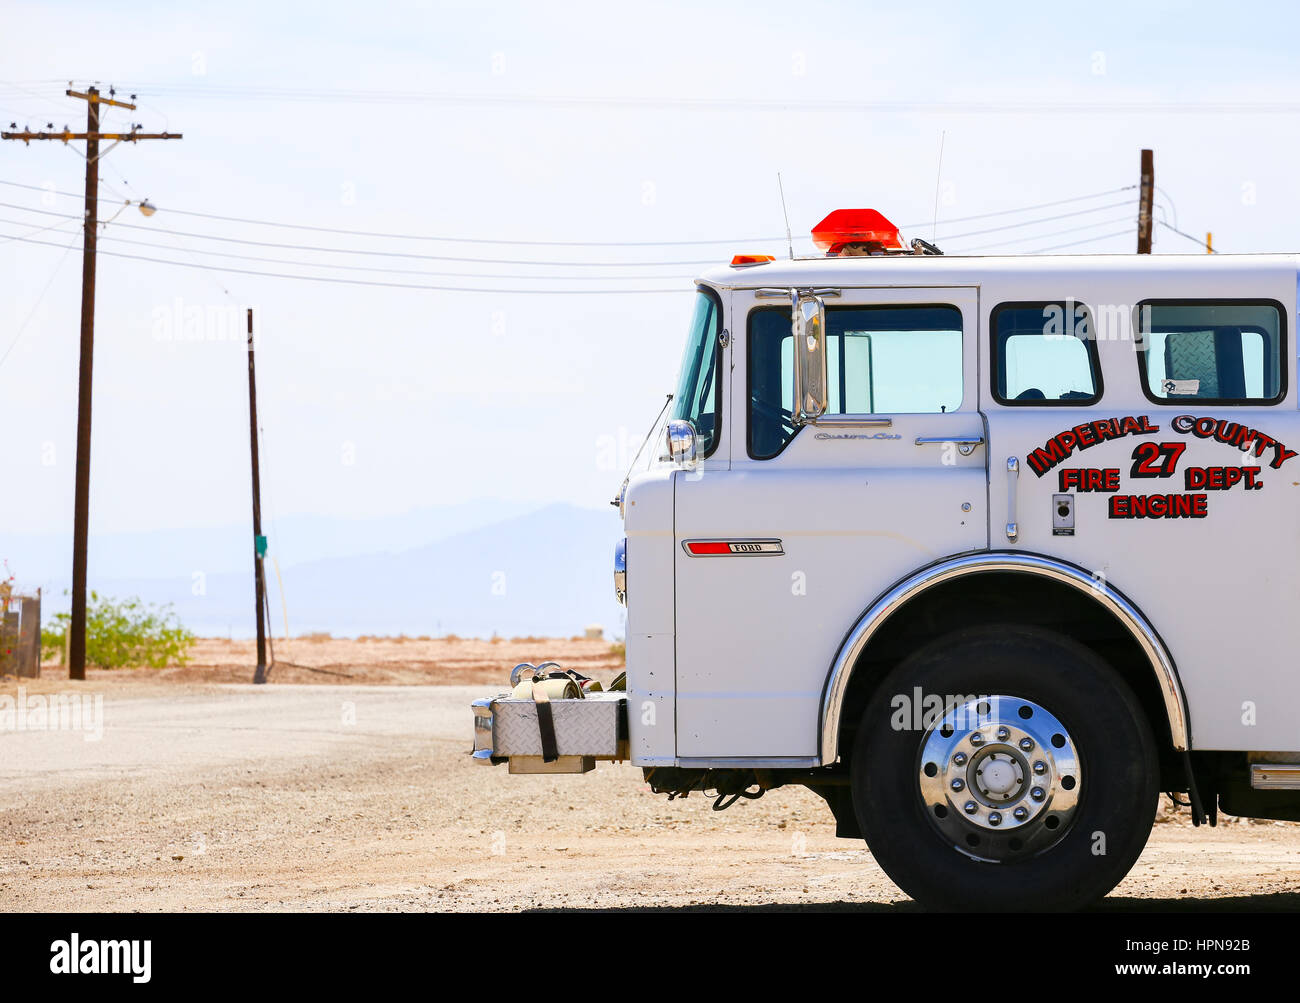 Bombay Beach, California, USA - May 26, 2015: Parked white fire engine of the Imperial County Fire Department. - Stock Image